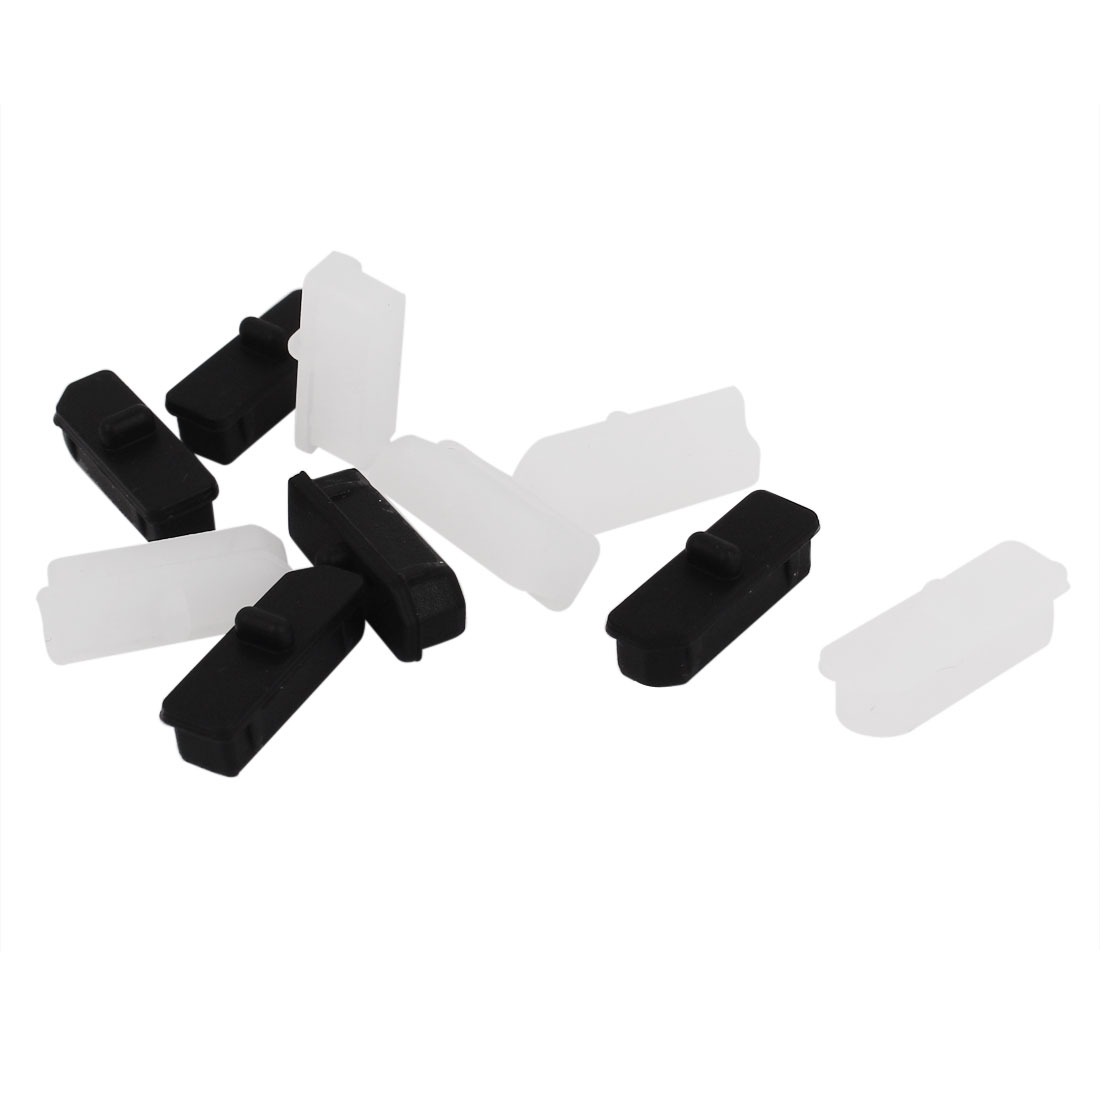 10 Pcs White Black Silicone Anti Dust Display Port Cover Cap Protector